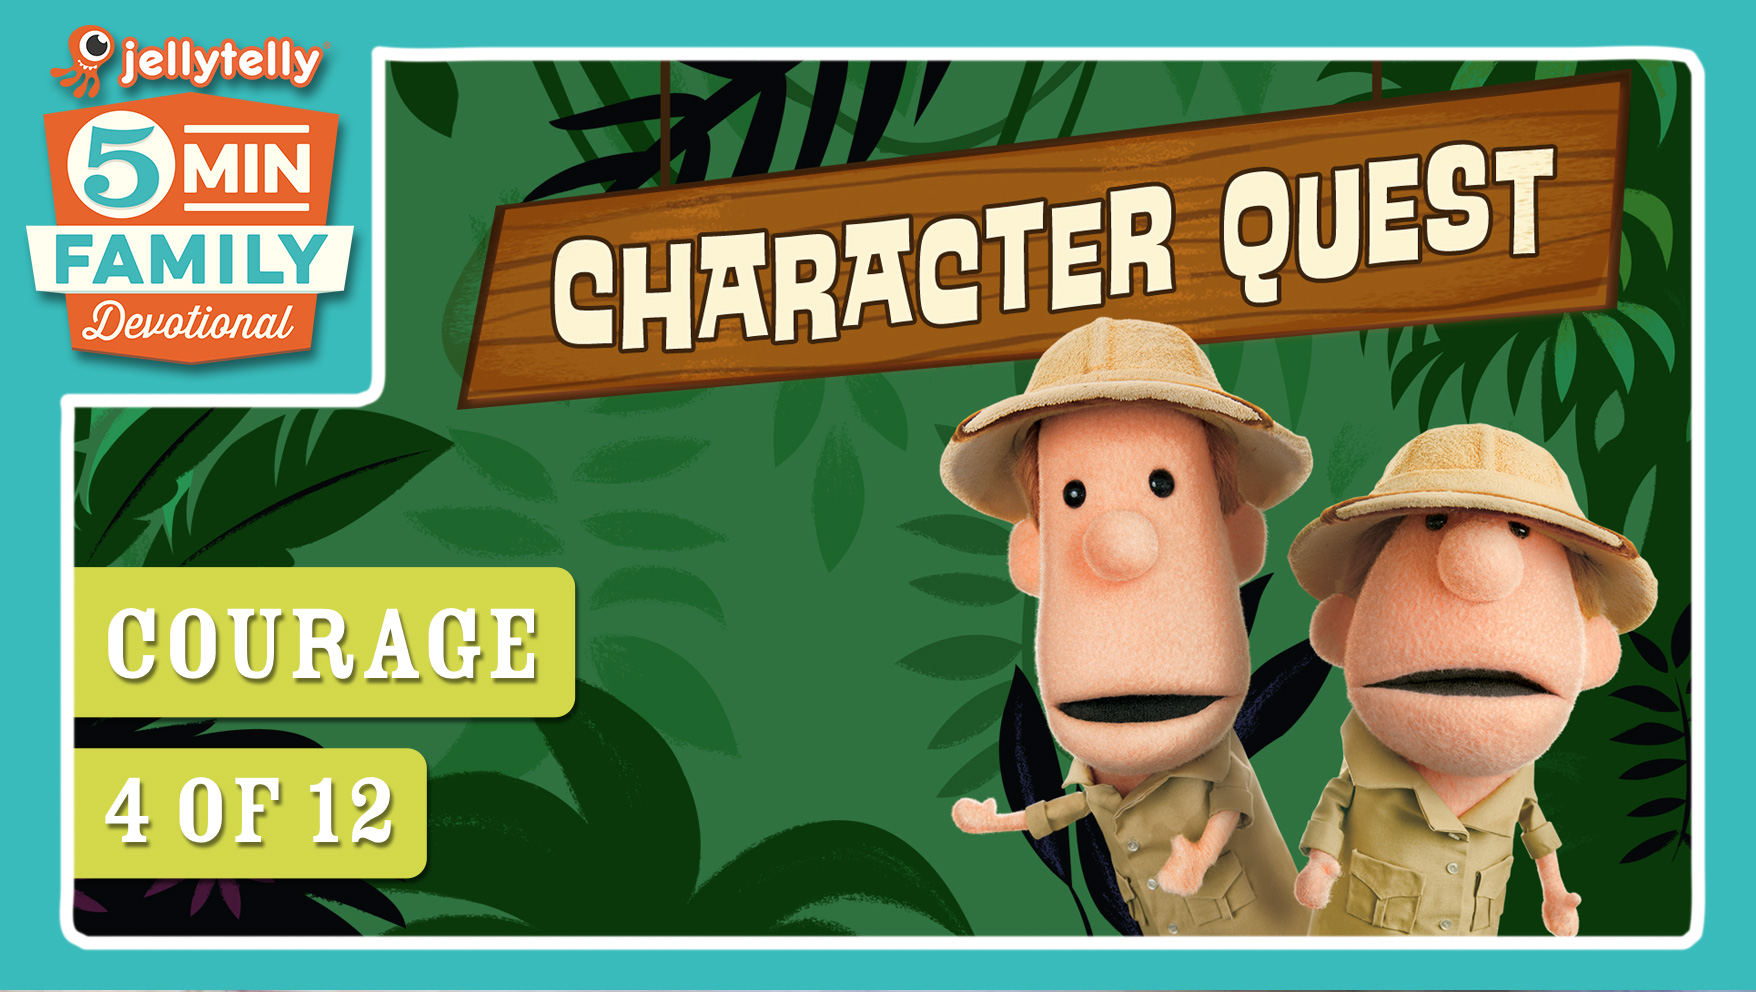 Courage - Character Quest 5 Minute Family Devotional